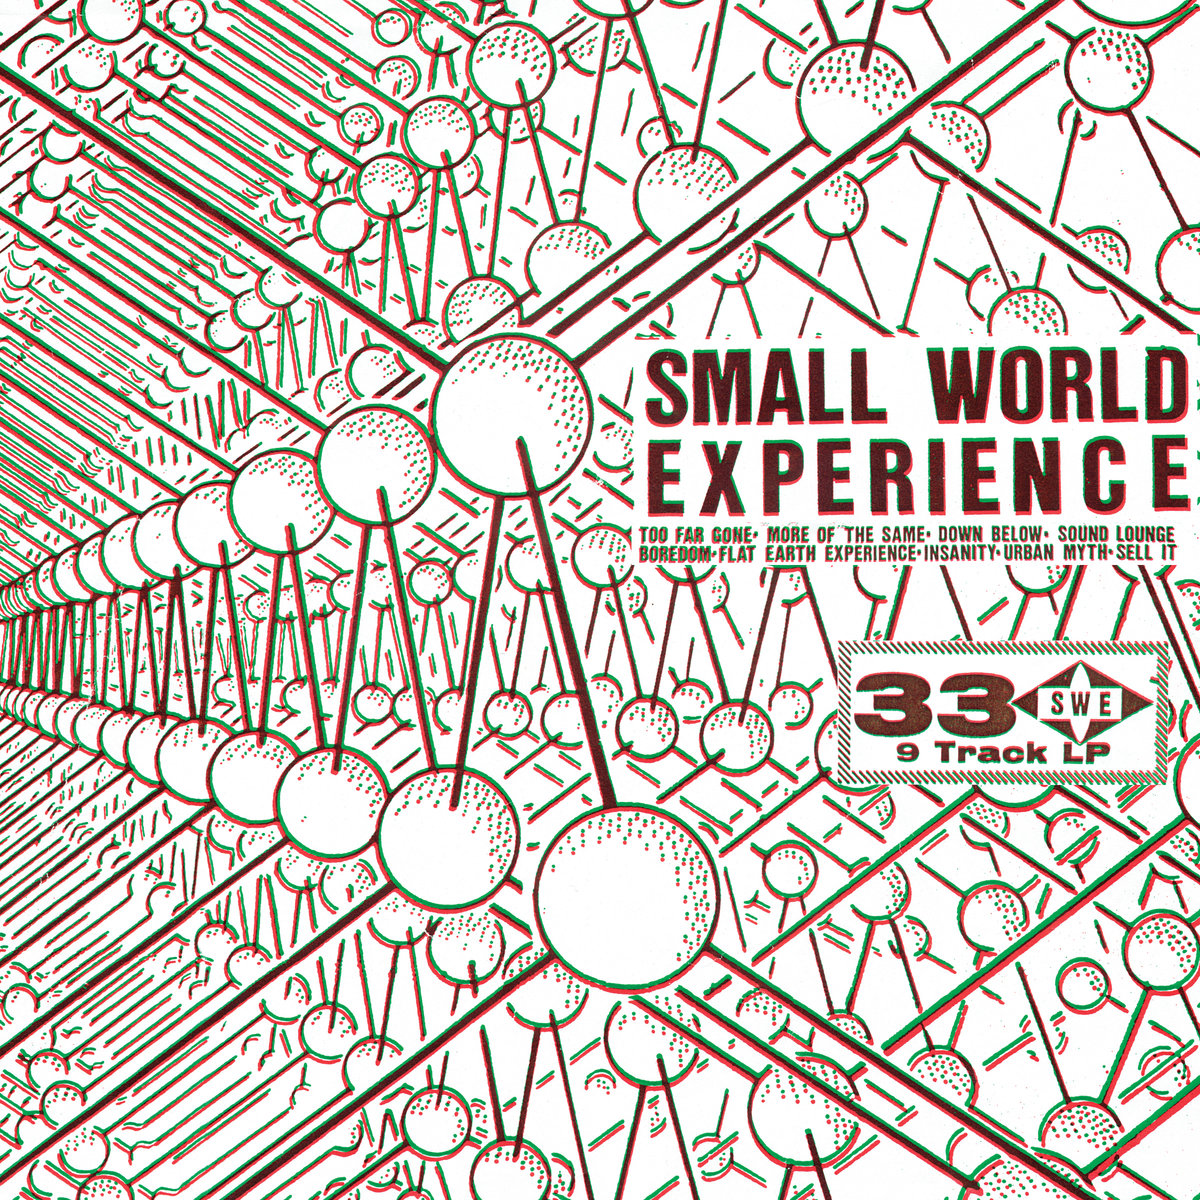 1200x1200 Flat Earth Experience Small World Experience